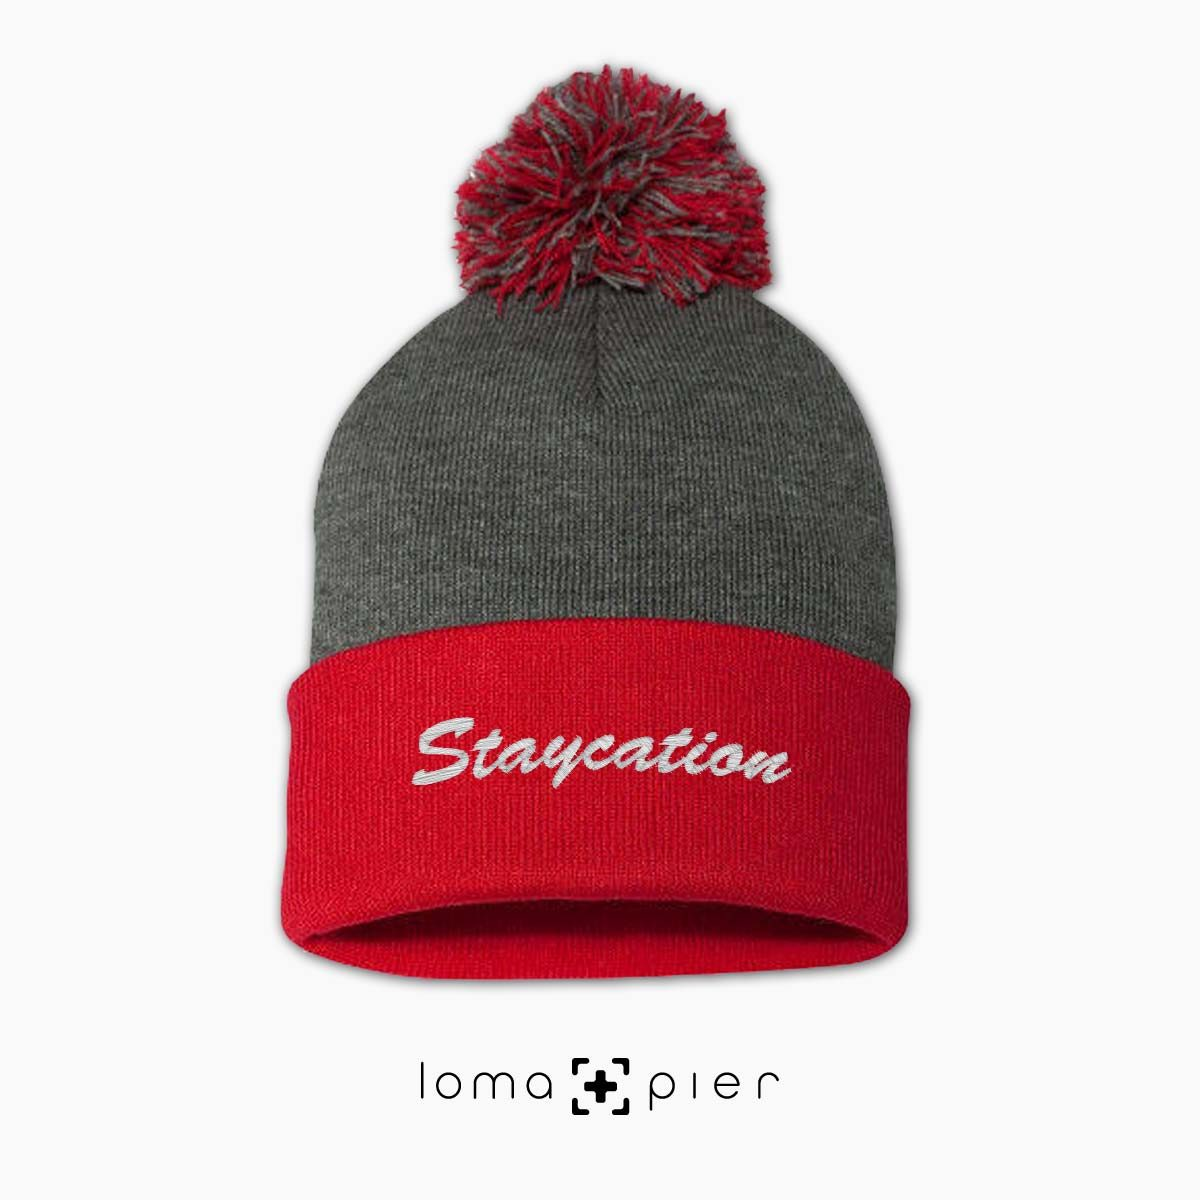 STAYCATION chill saying embroidered on a grey red pom pom beanie by loma+pier hat store